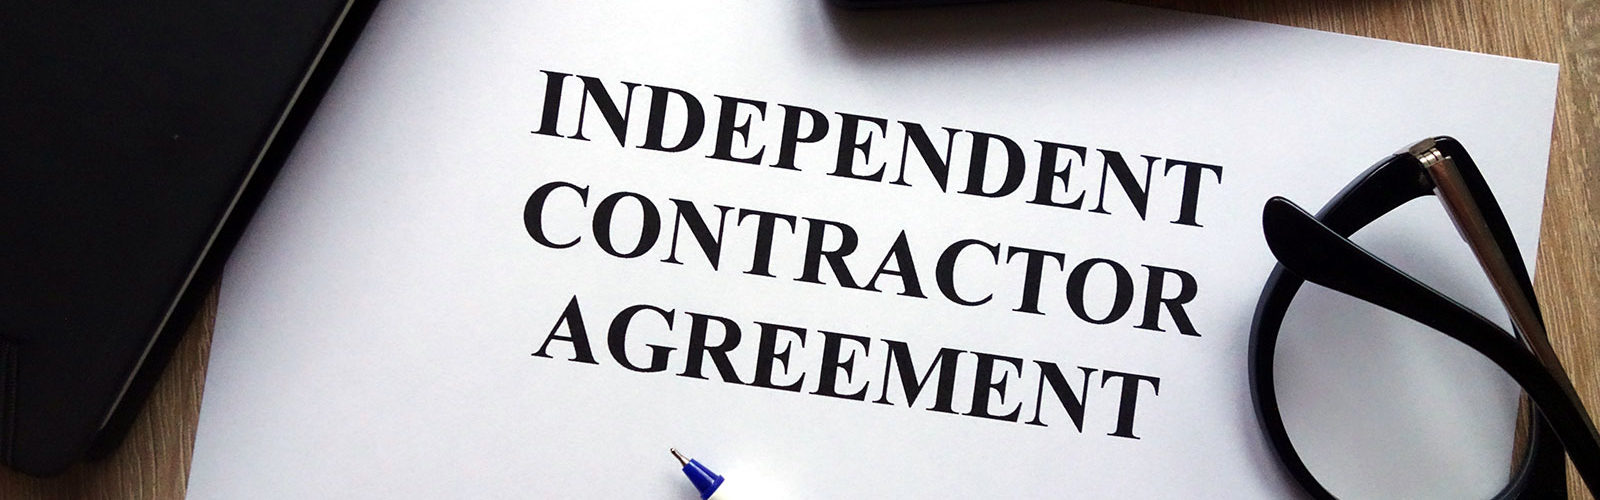 independant-contractor-ou-employee-quelle-est-la-difference-une